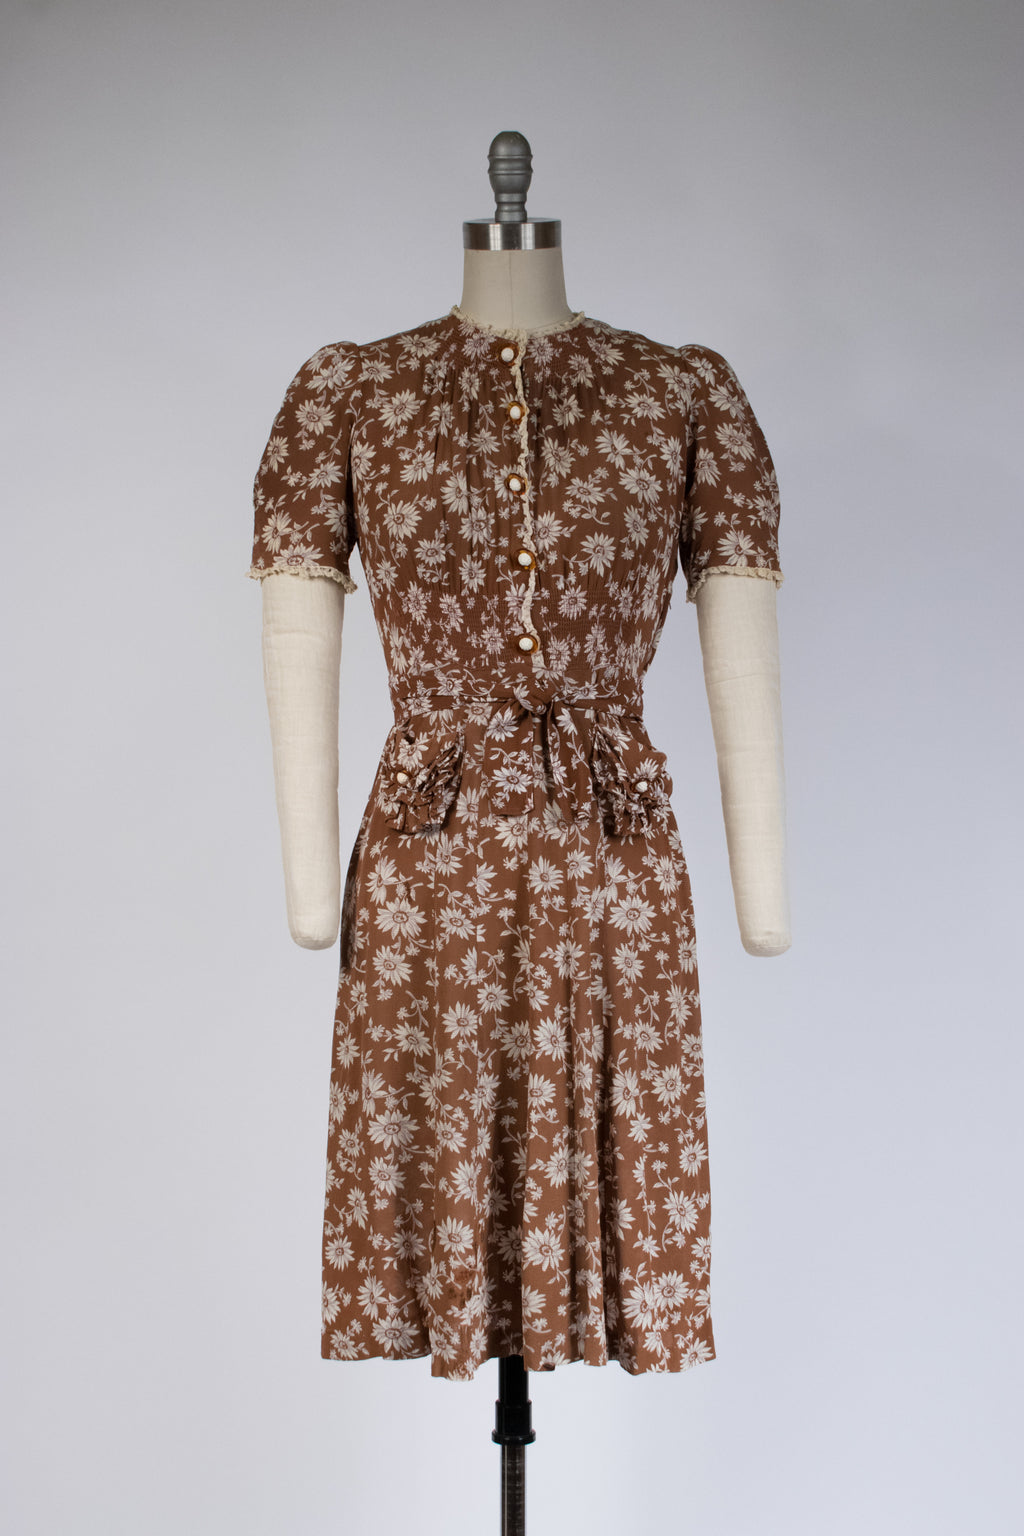 Charming As-Is 1930s Puff Sleeve Dress with Brown and White Daisy Print